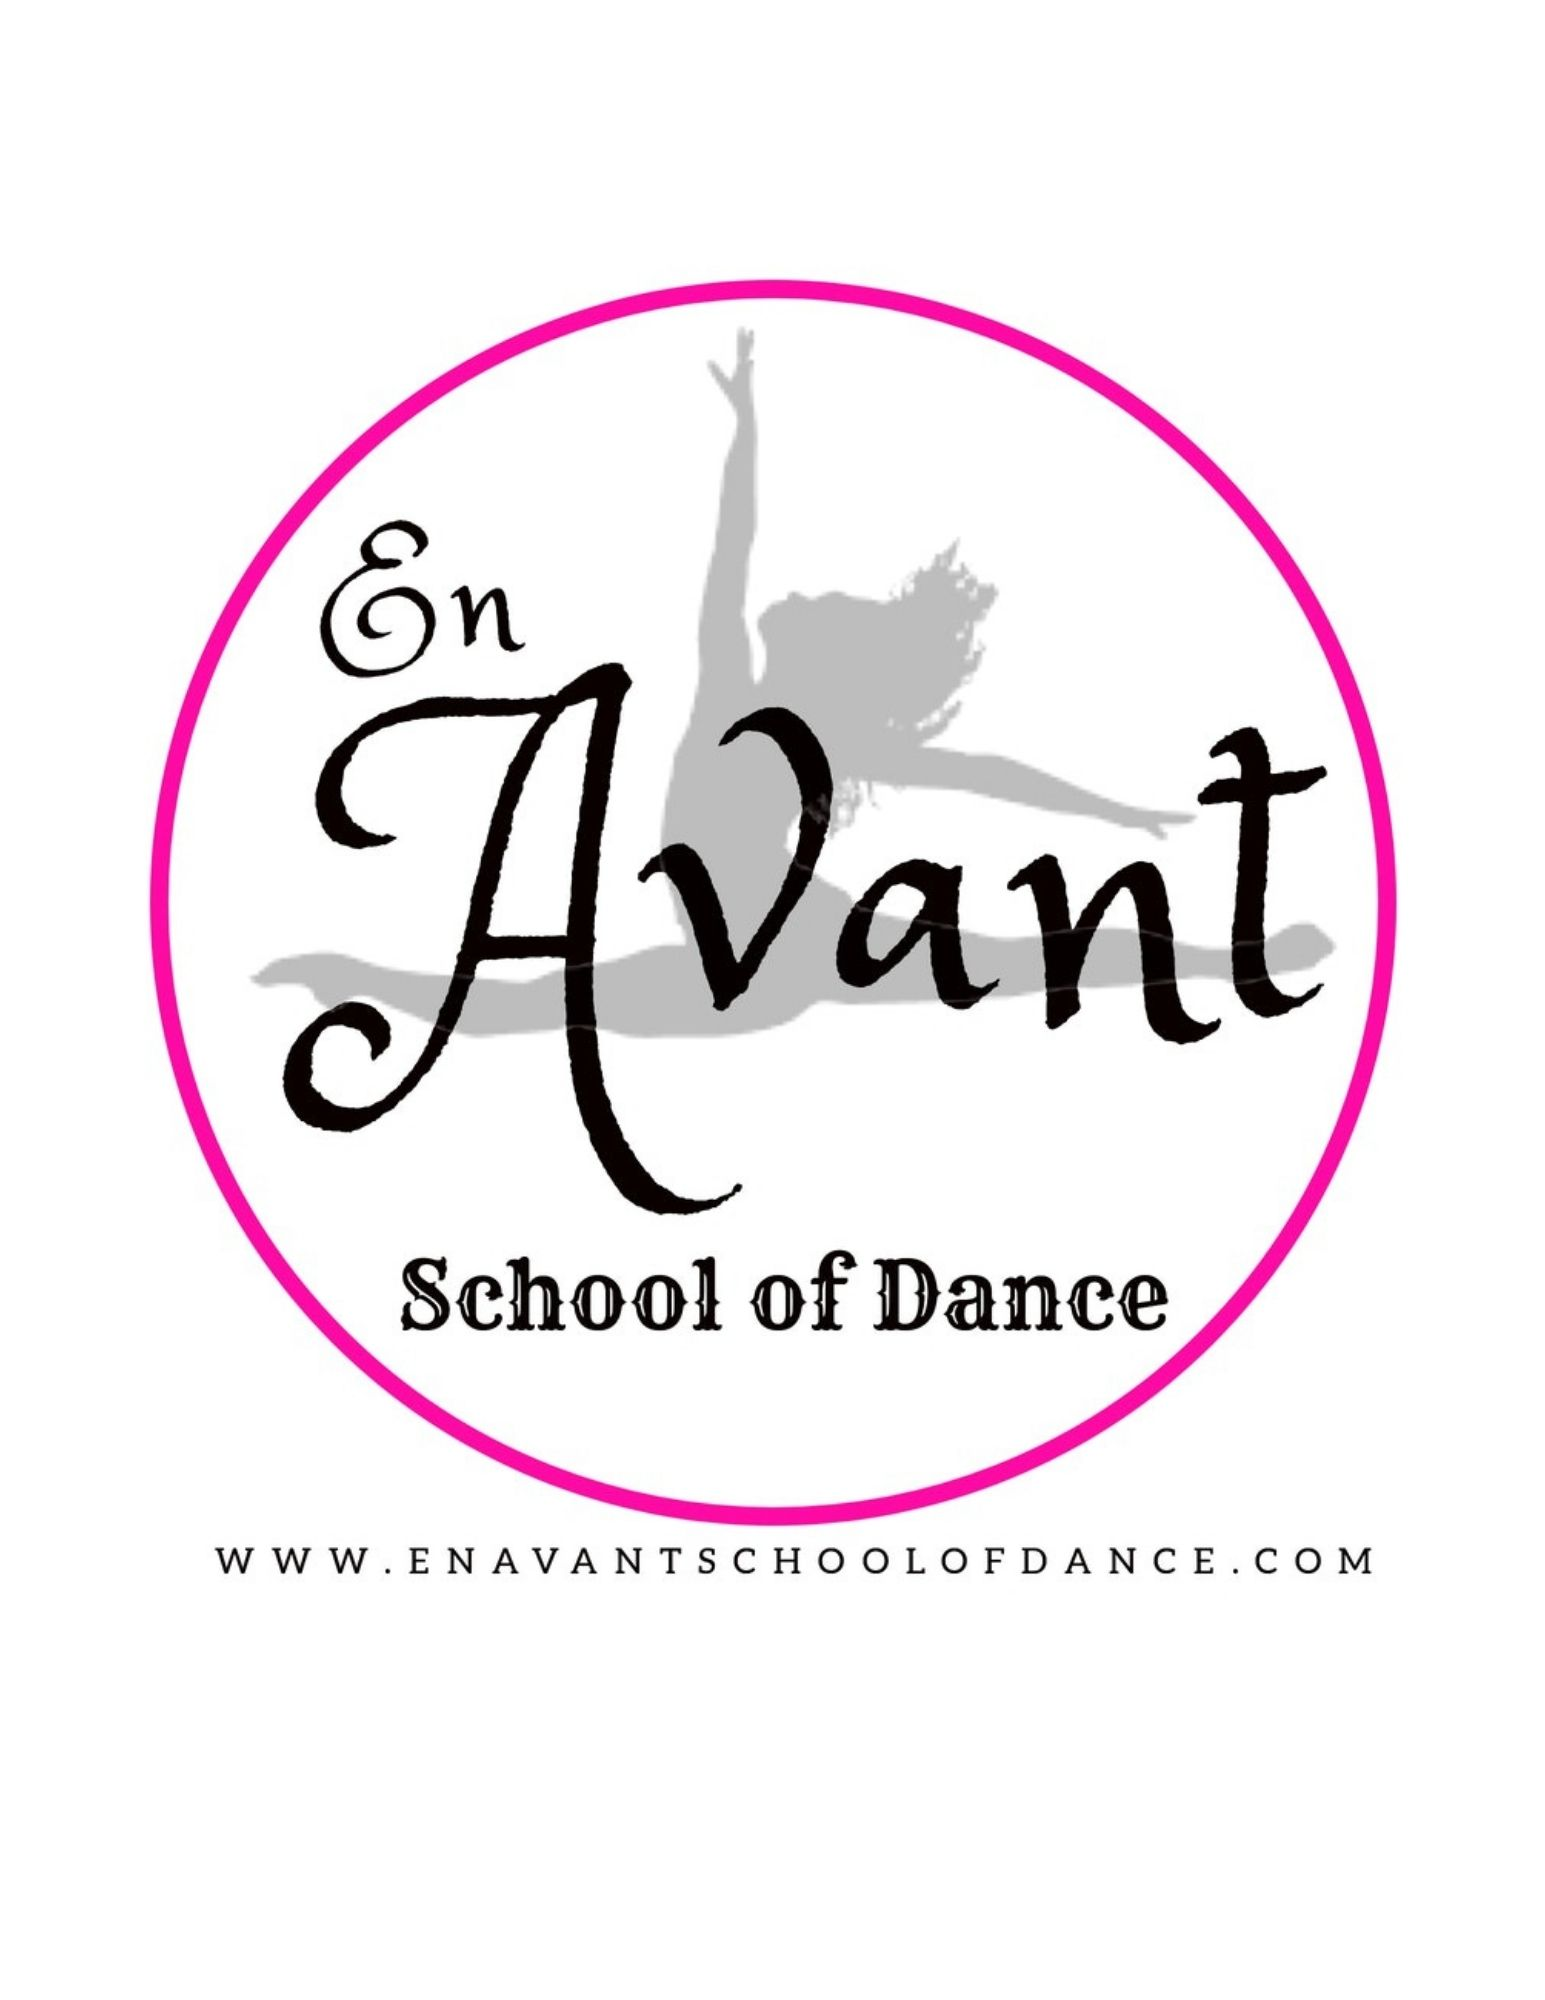 Appointments for Sizing Shoes and Dance wear